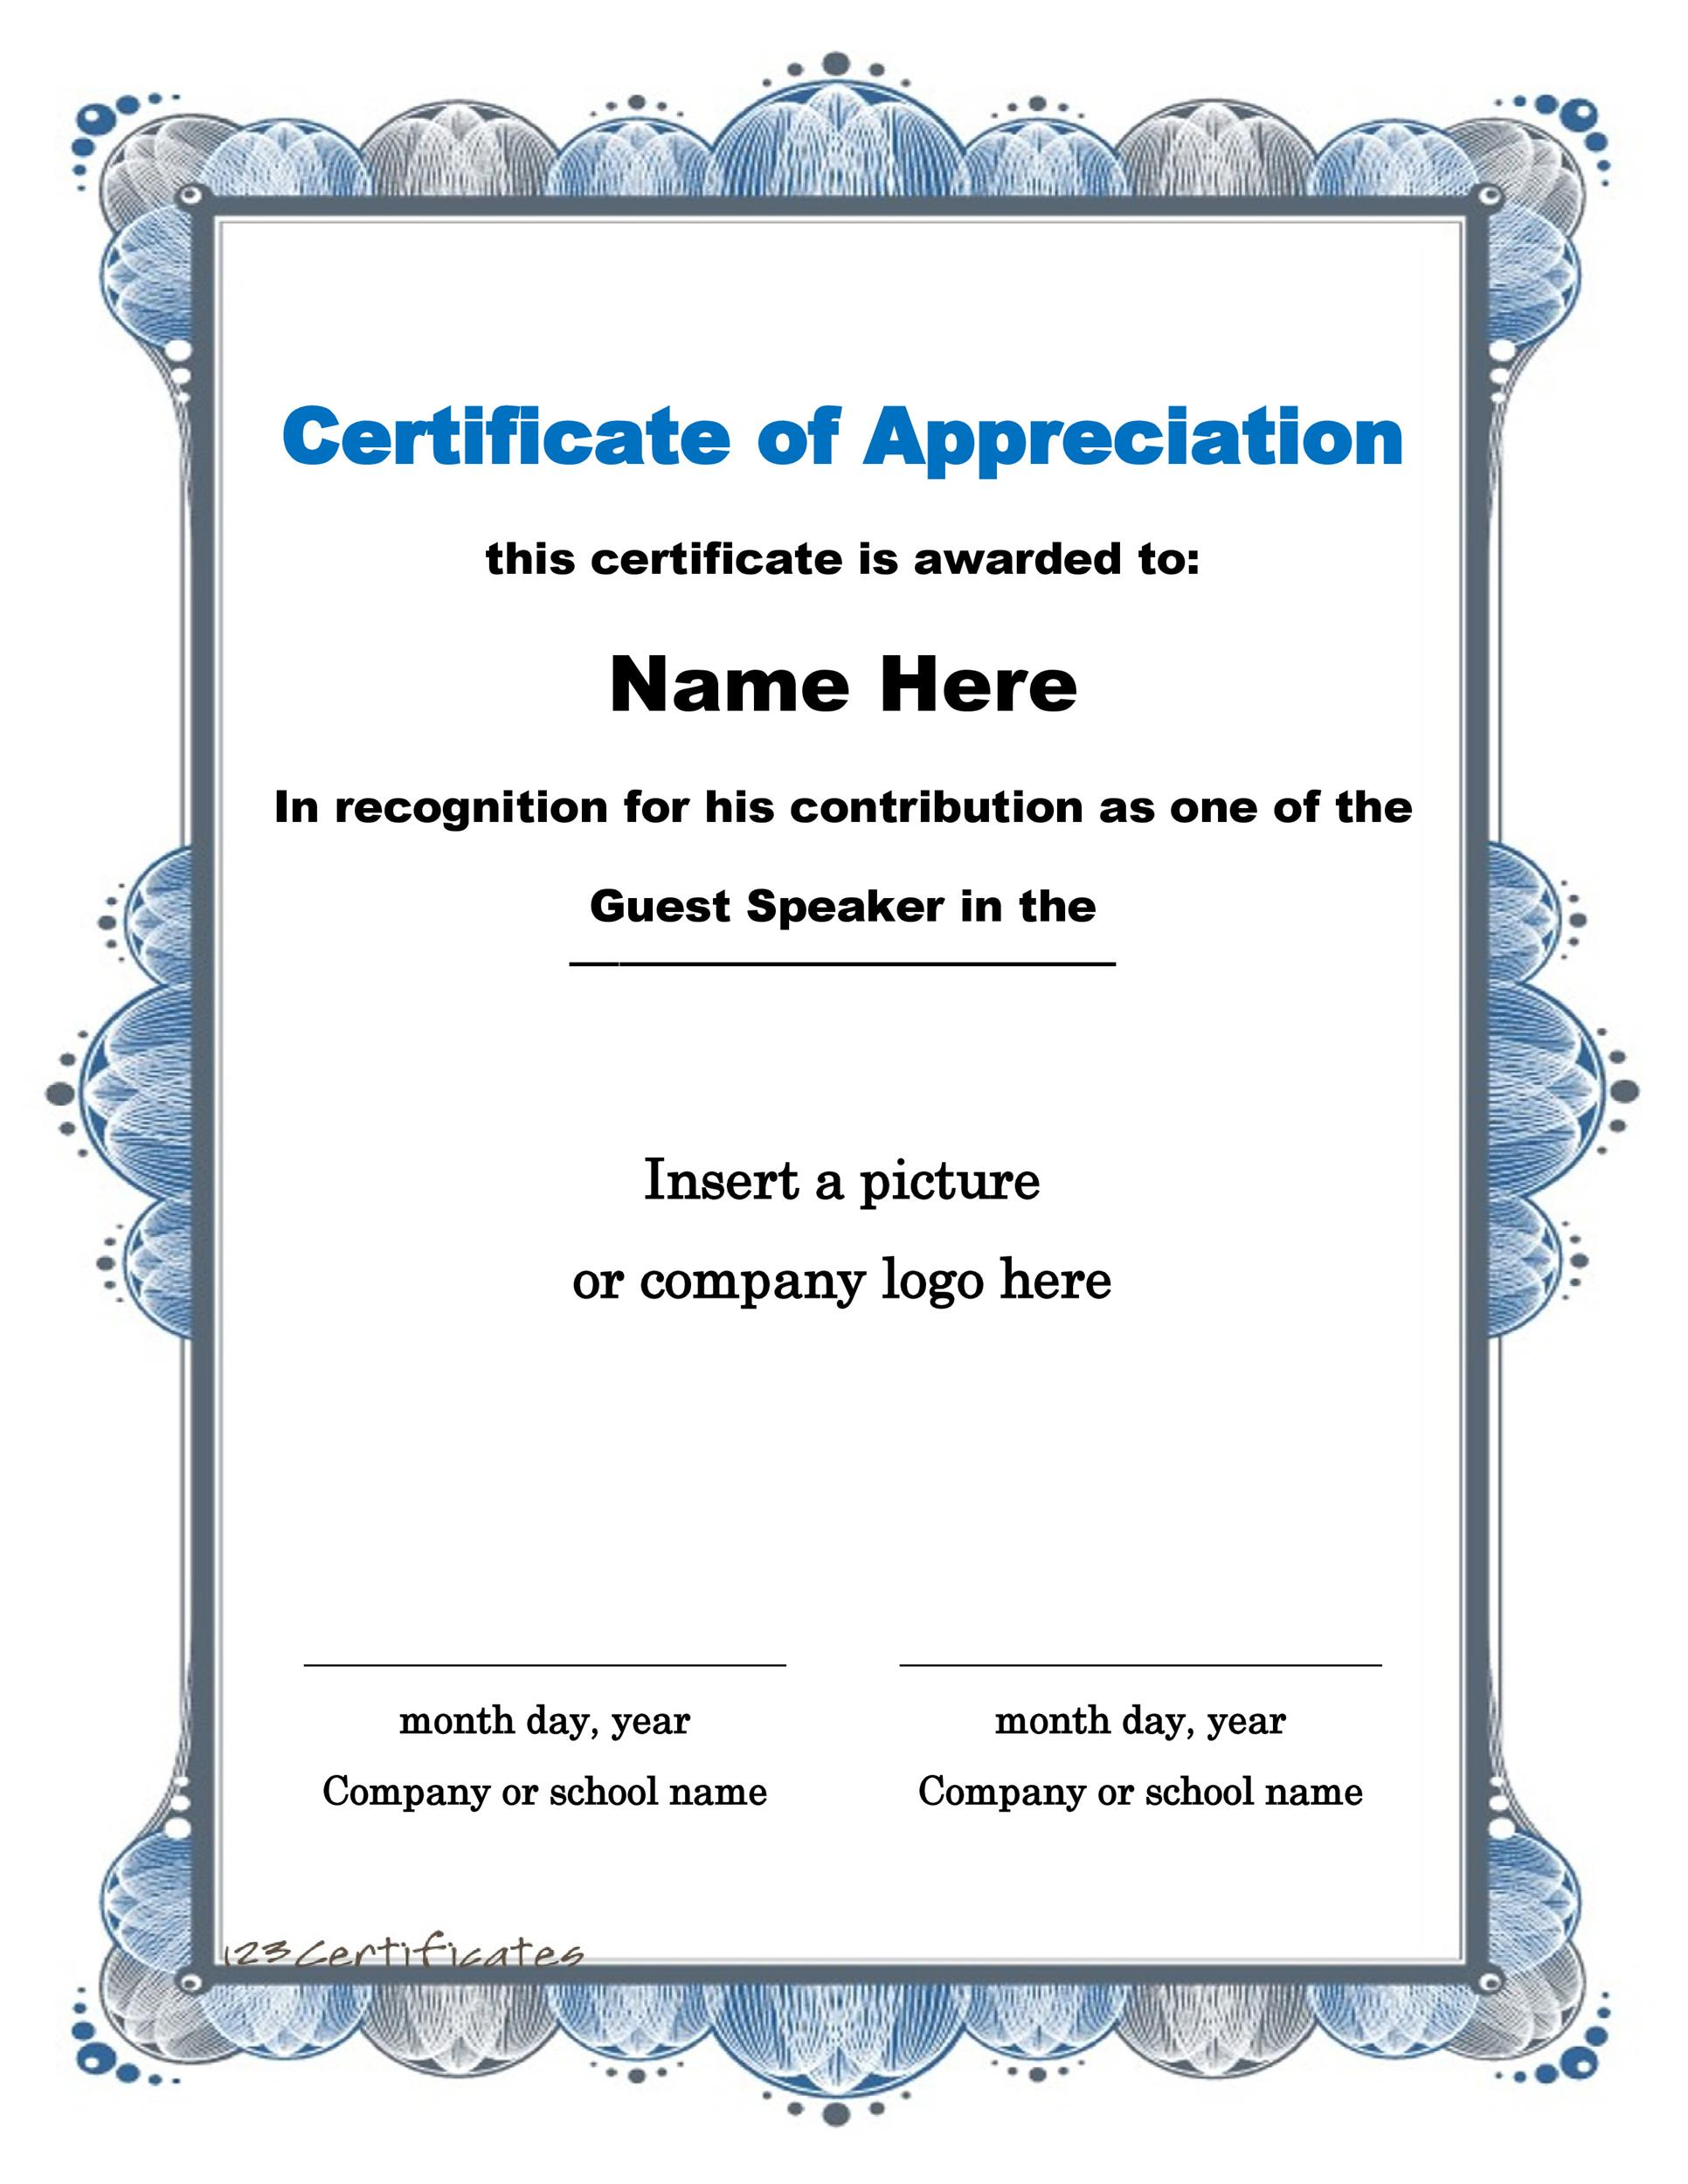 Free certificate of appreciation templates and letters 30 free certificate of appreciation templates and letters yadclub Images